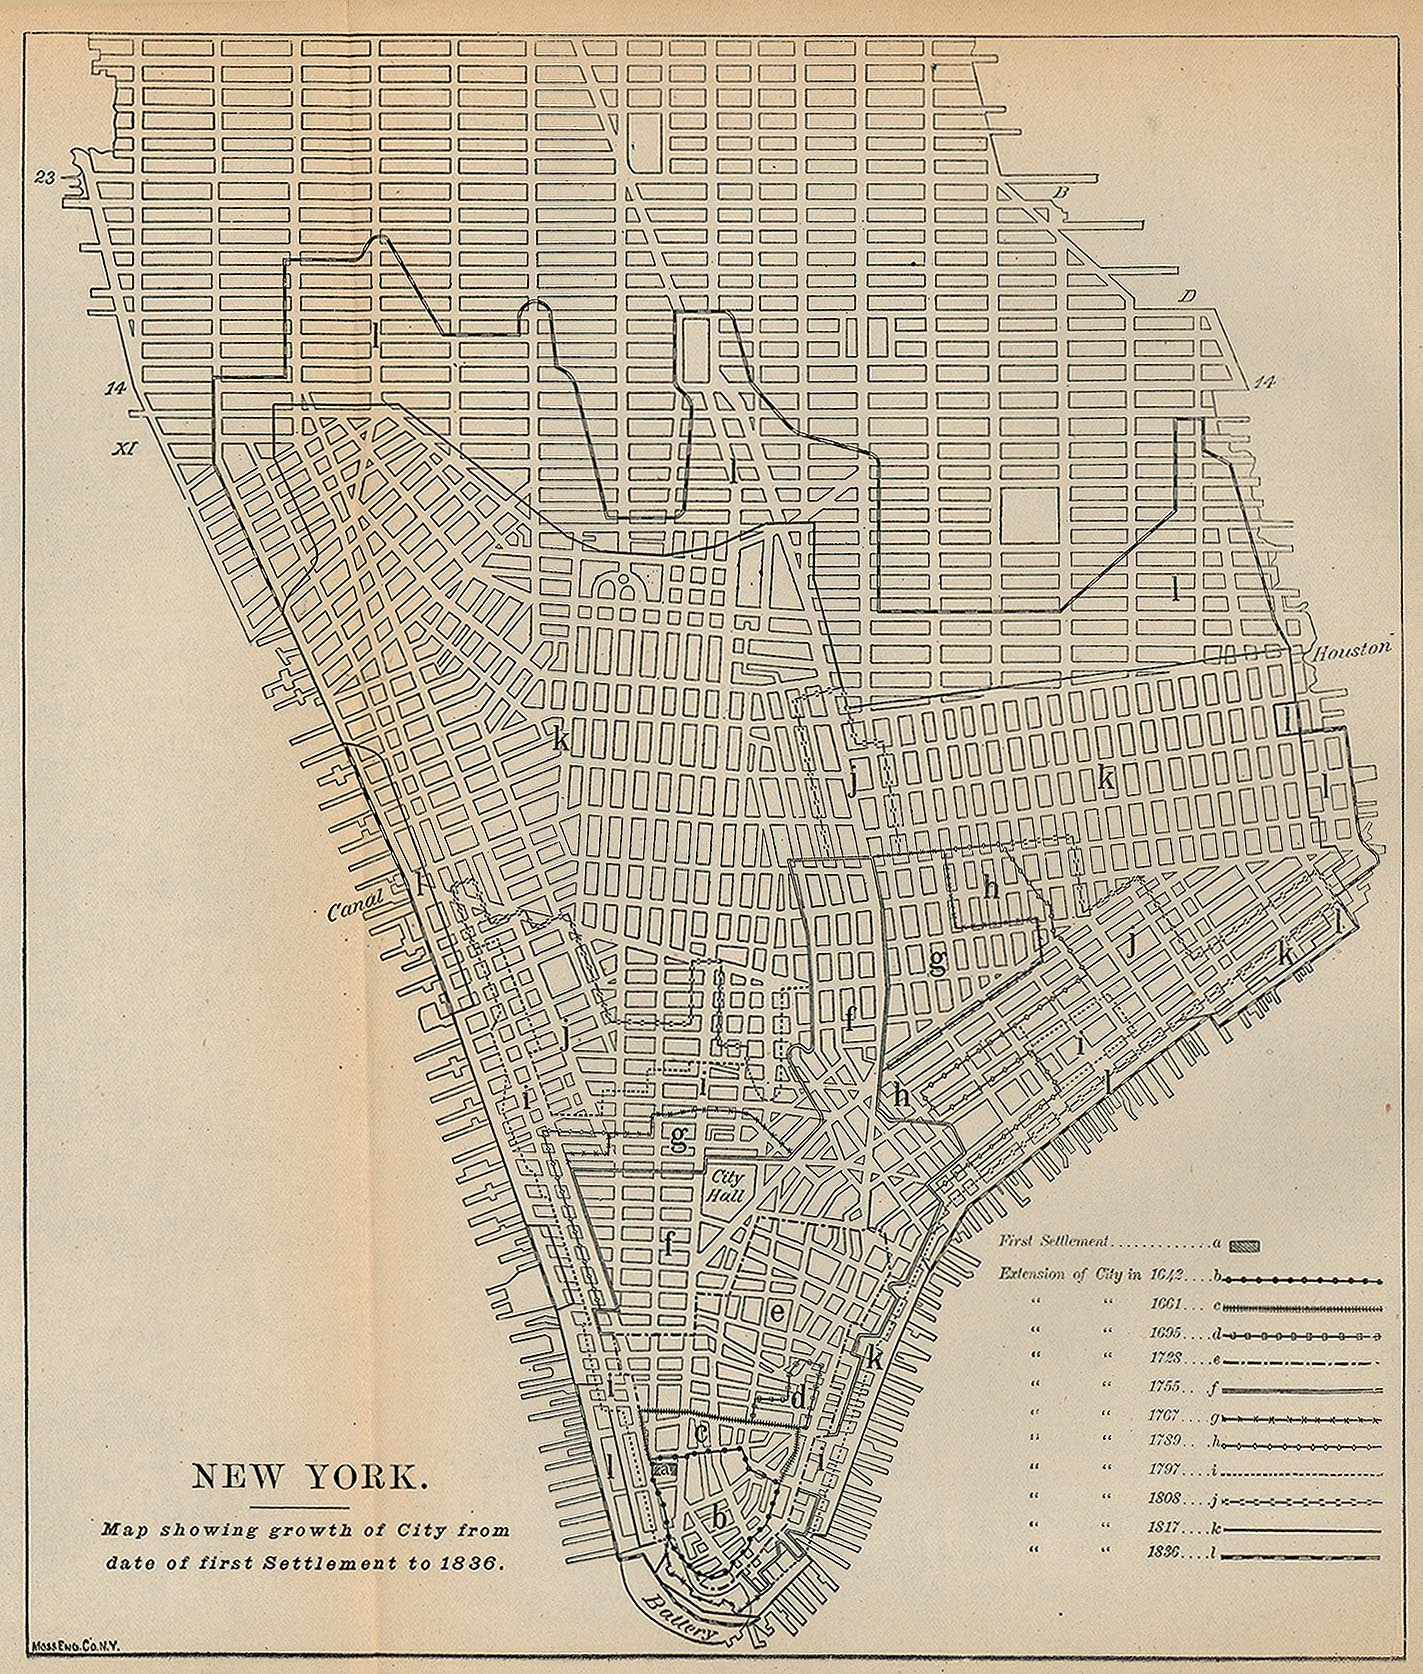 New York City First Settlement Map, New York, United States 1836